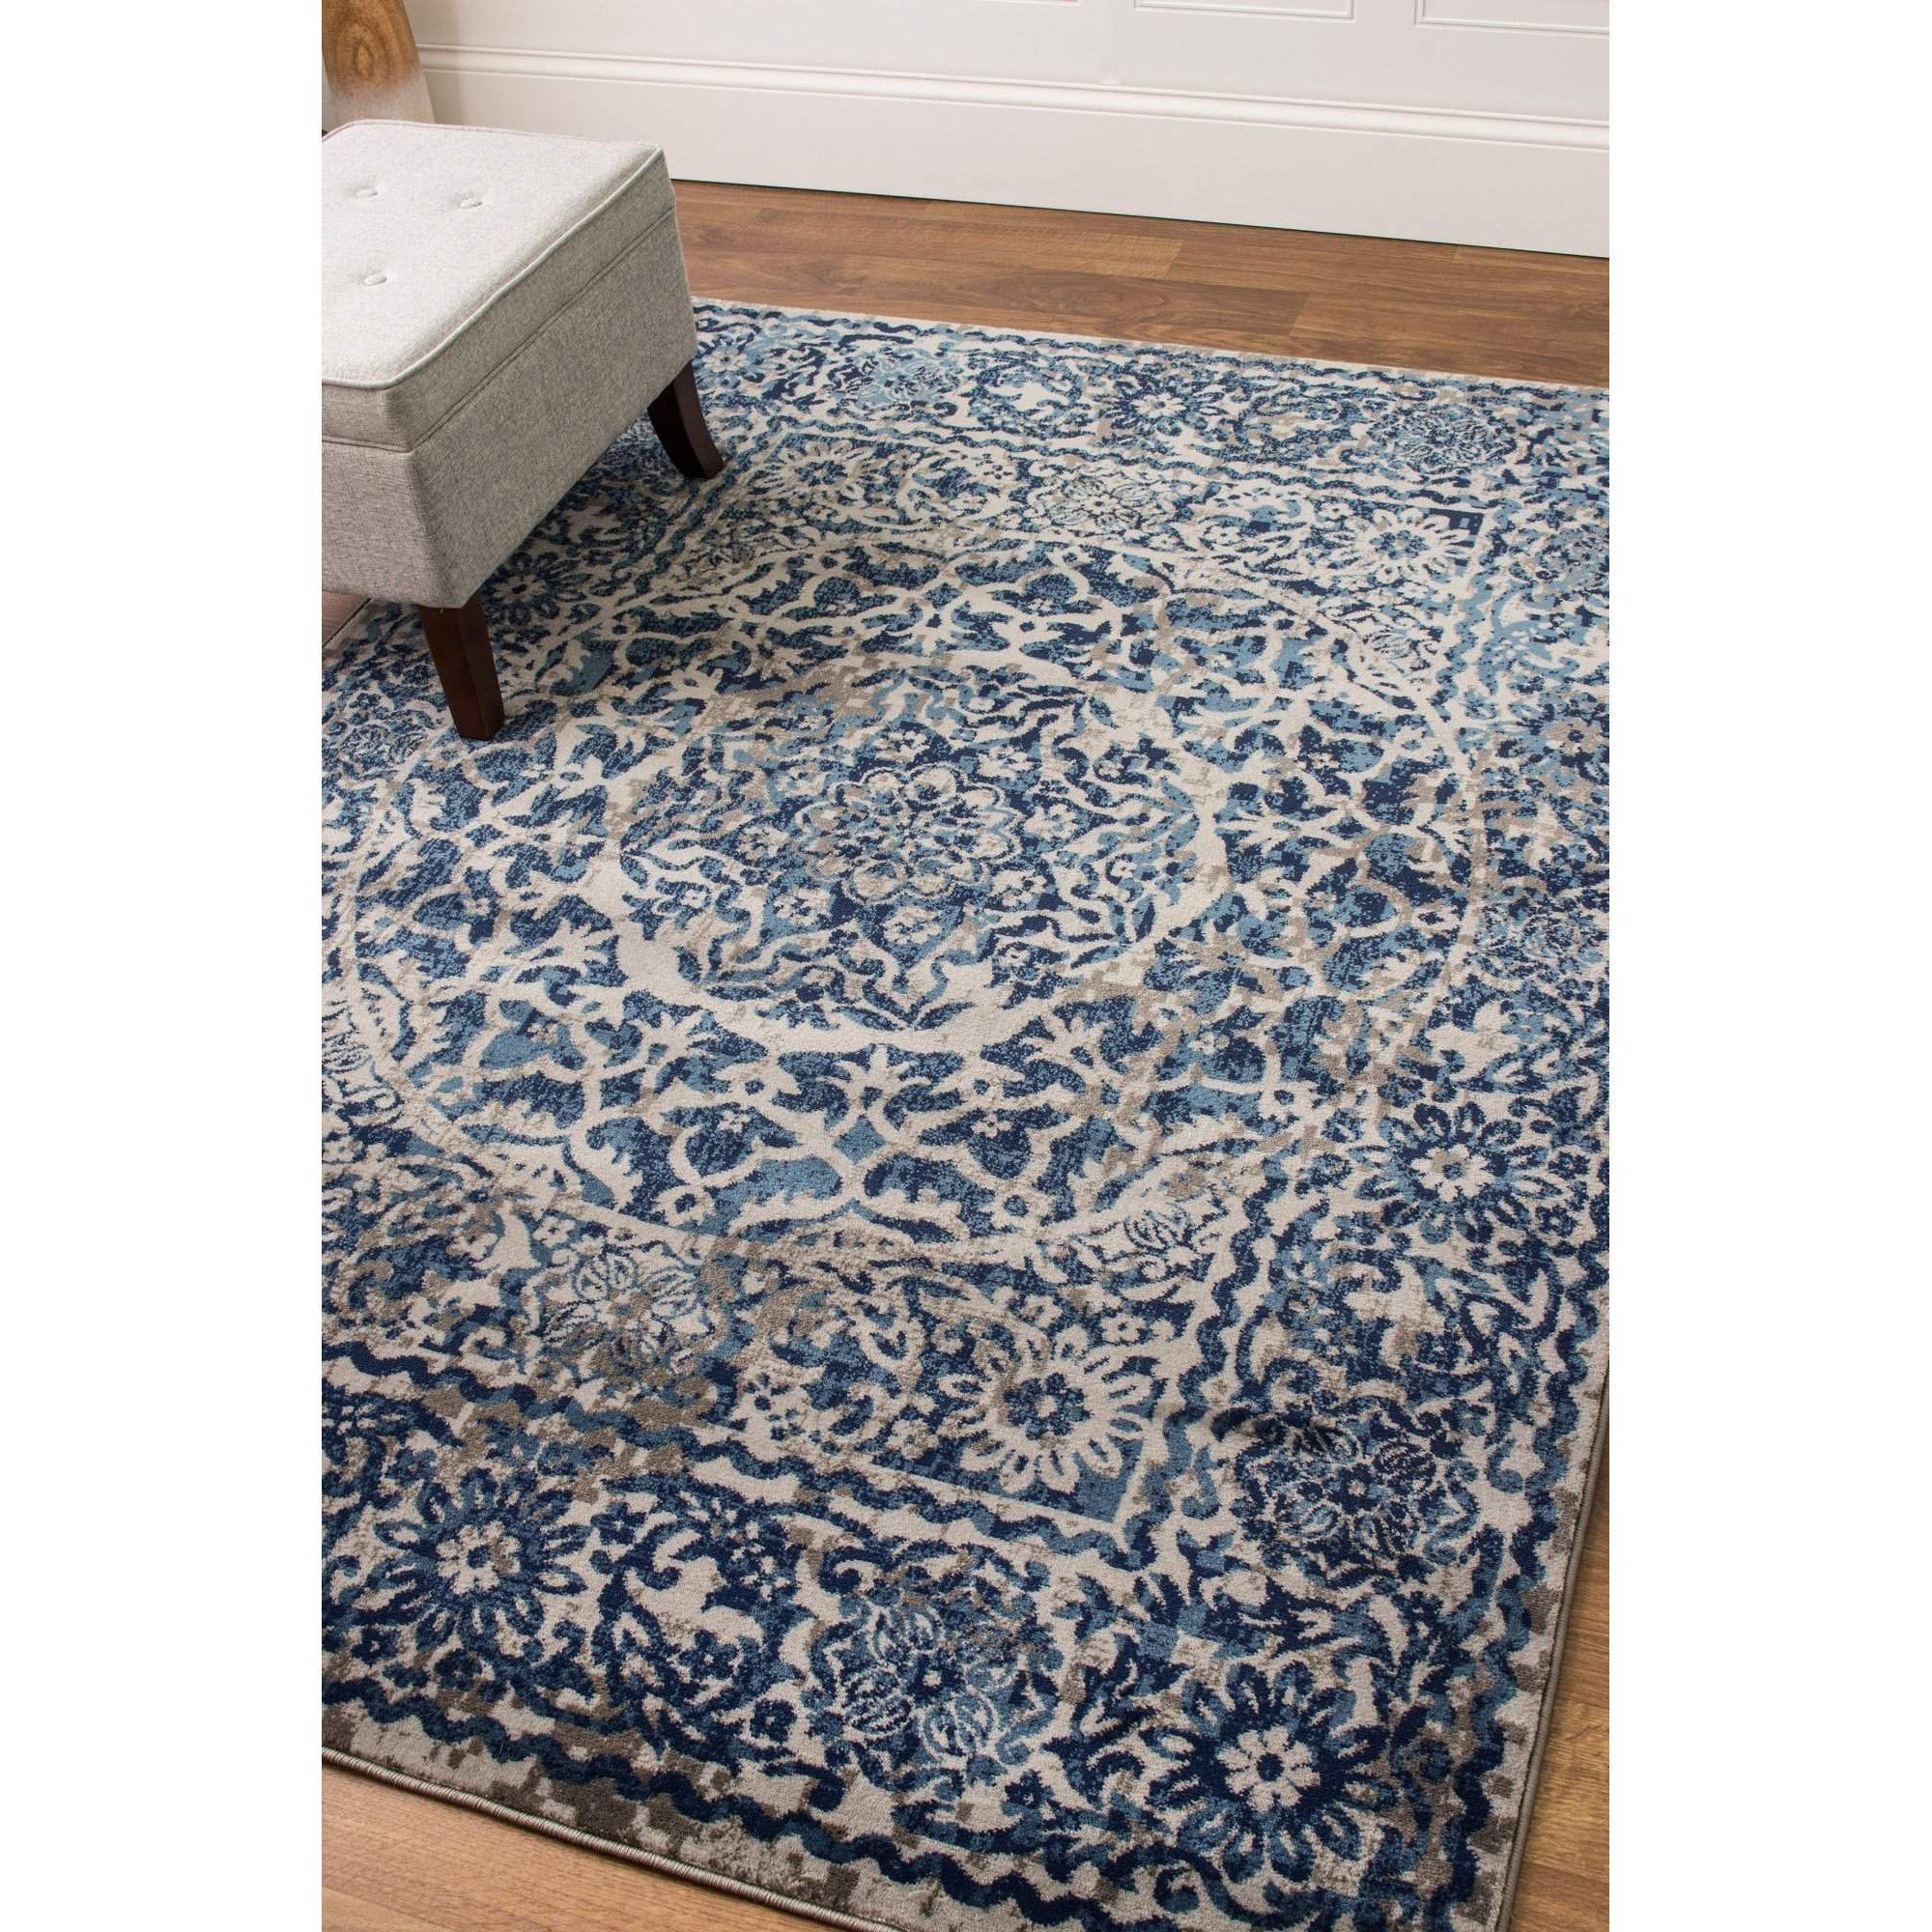 Transitional Rug Gray & Blue High Quality Carpet Nylon